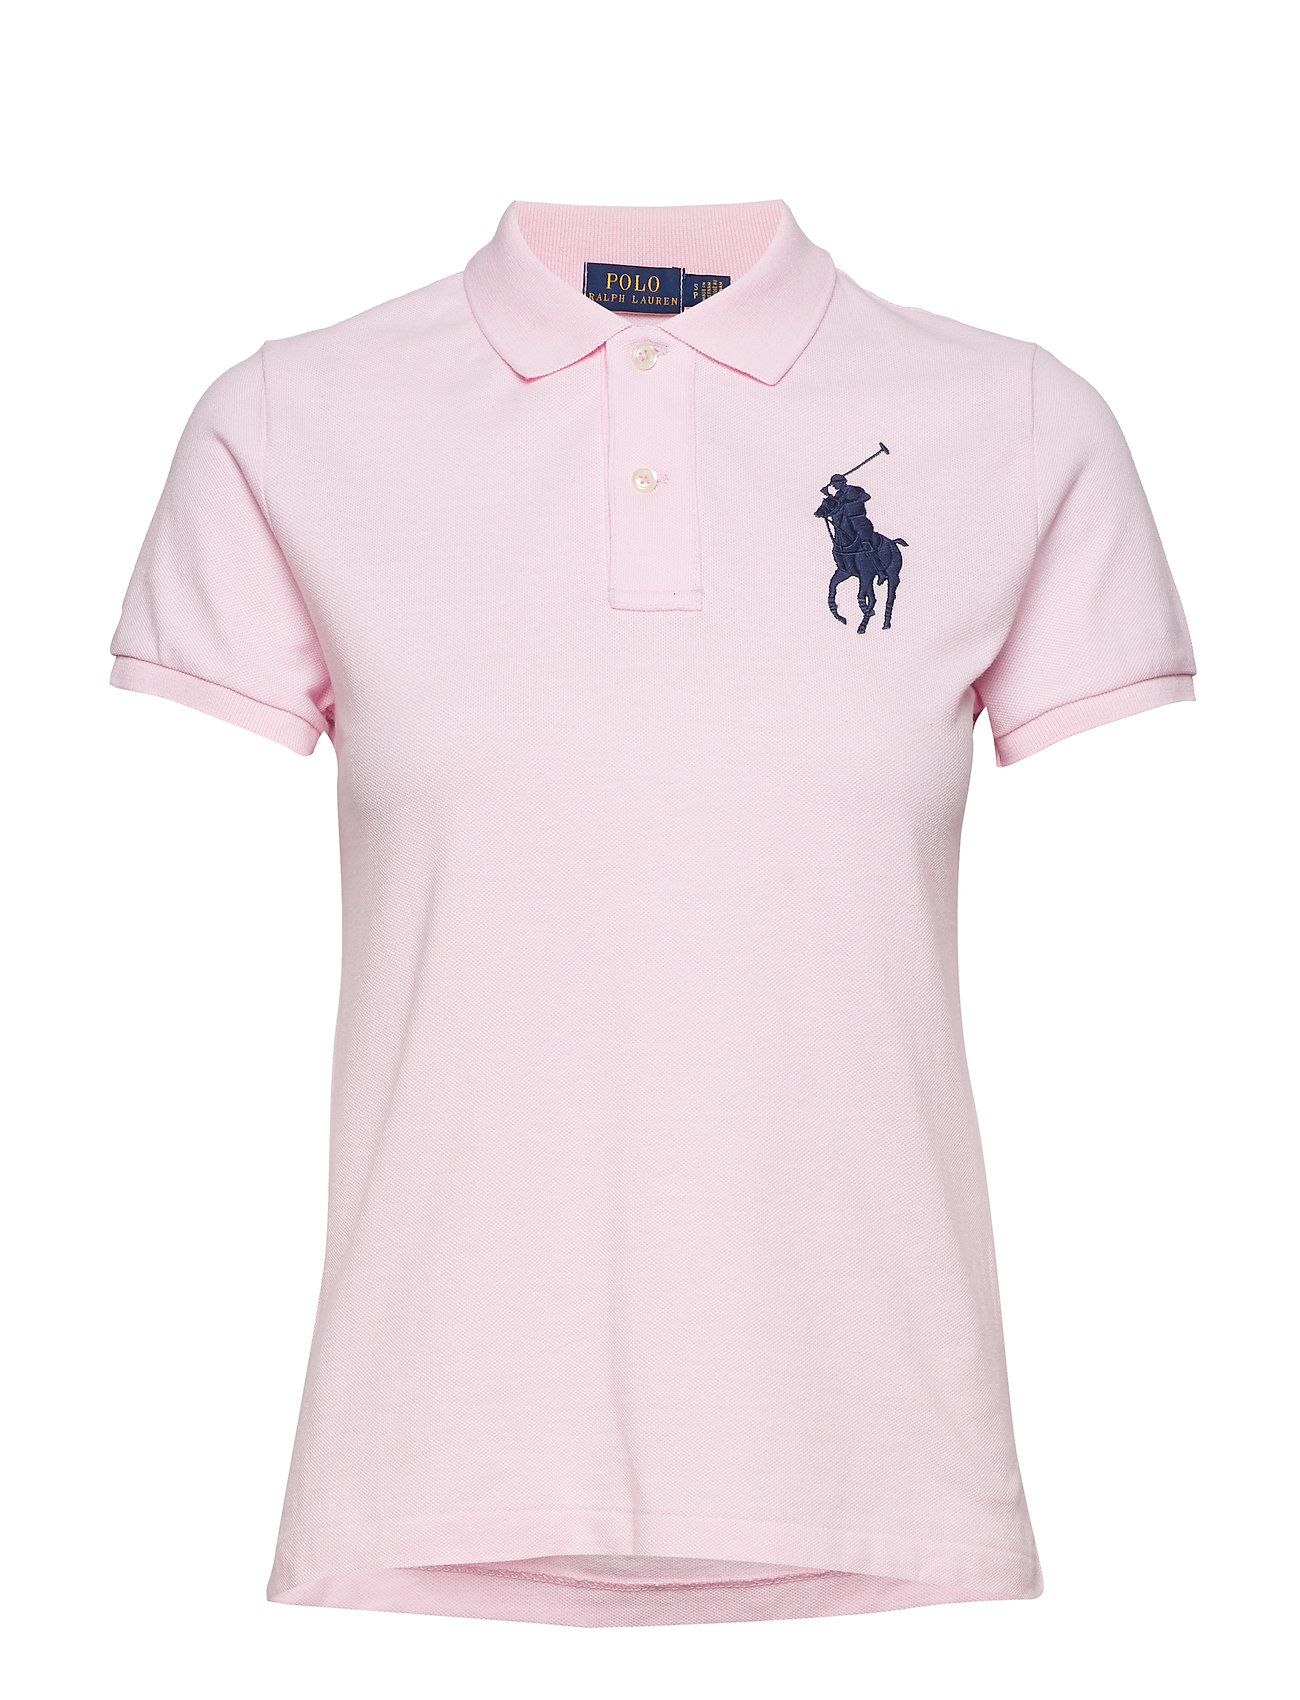 Skinny Fit Big Pony Polo Shirt Country Club Pink 119 95 Polo